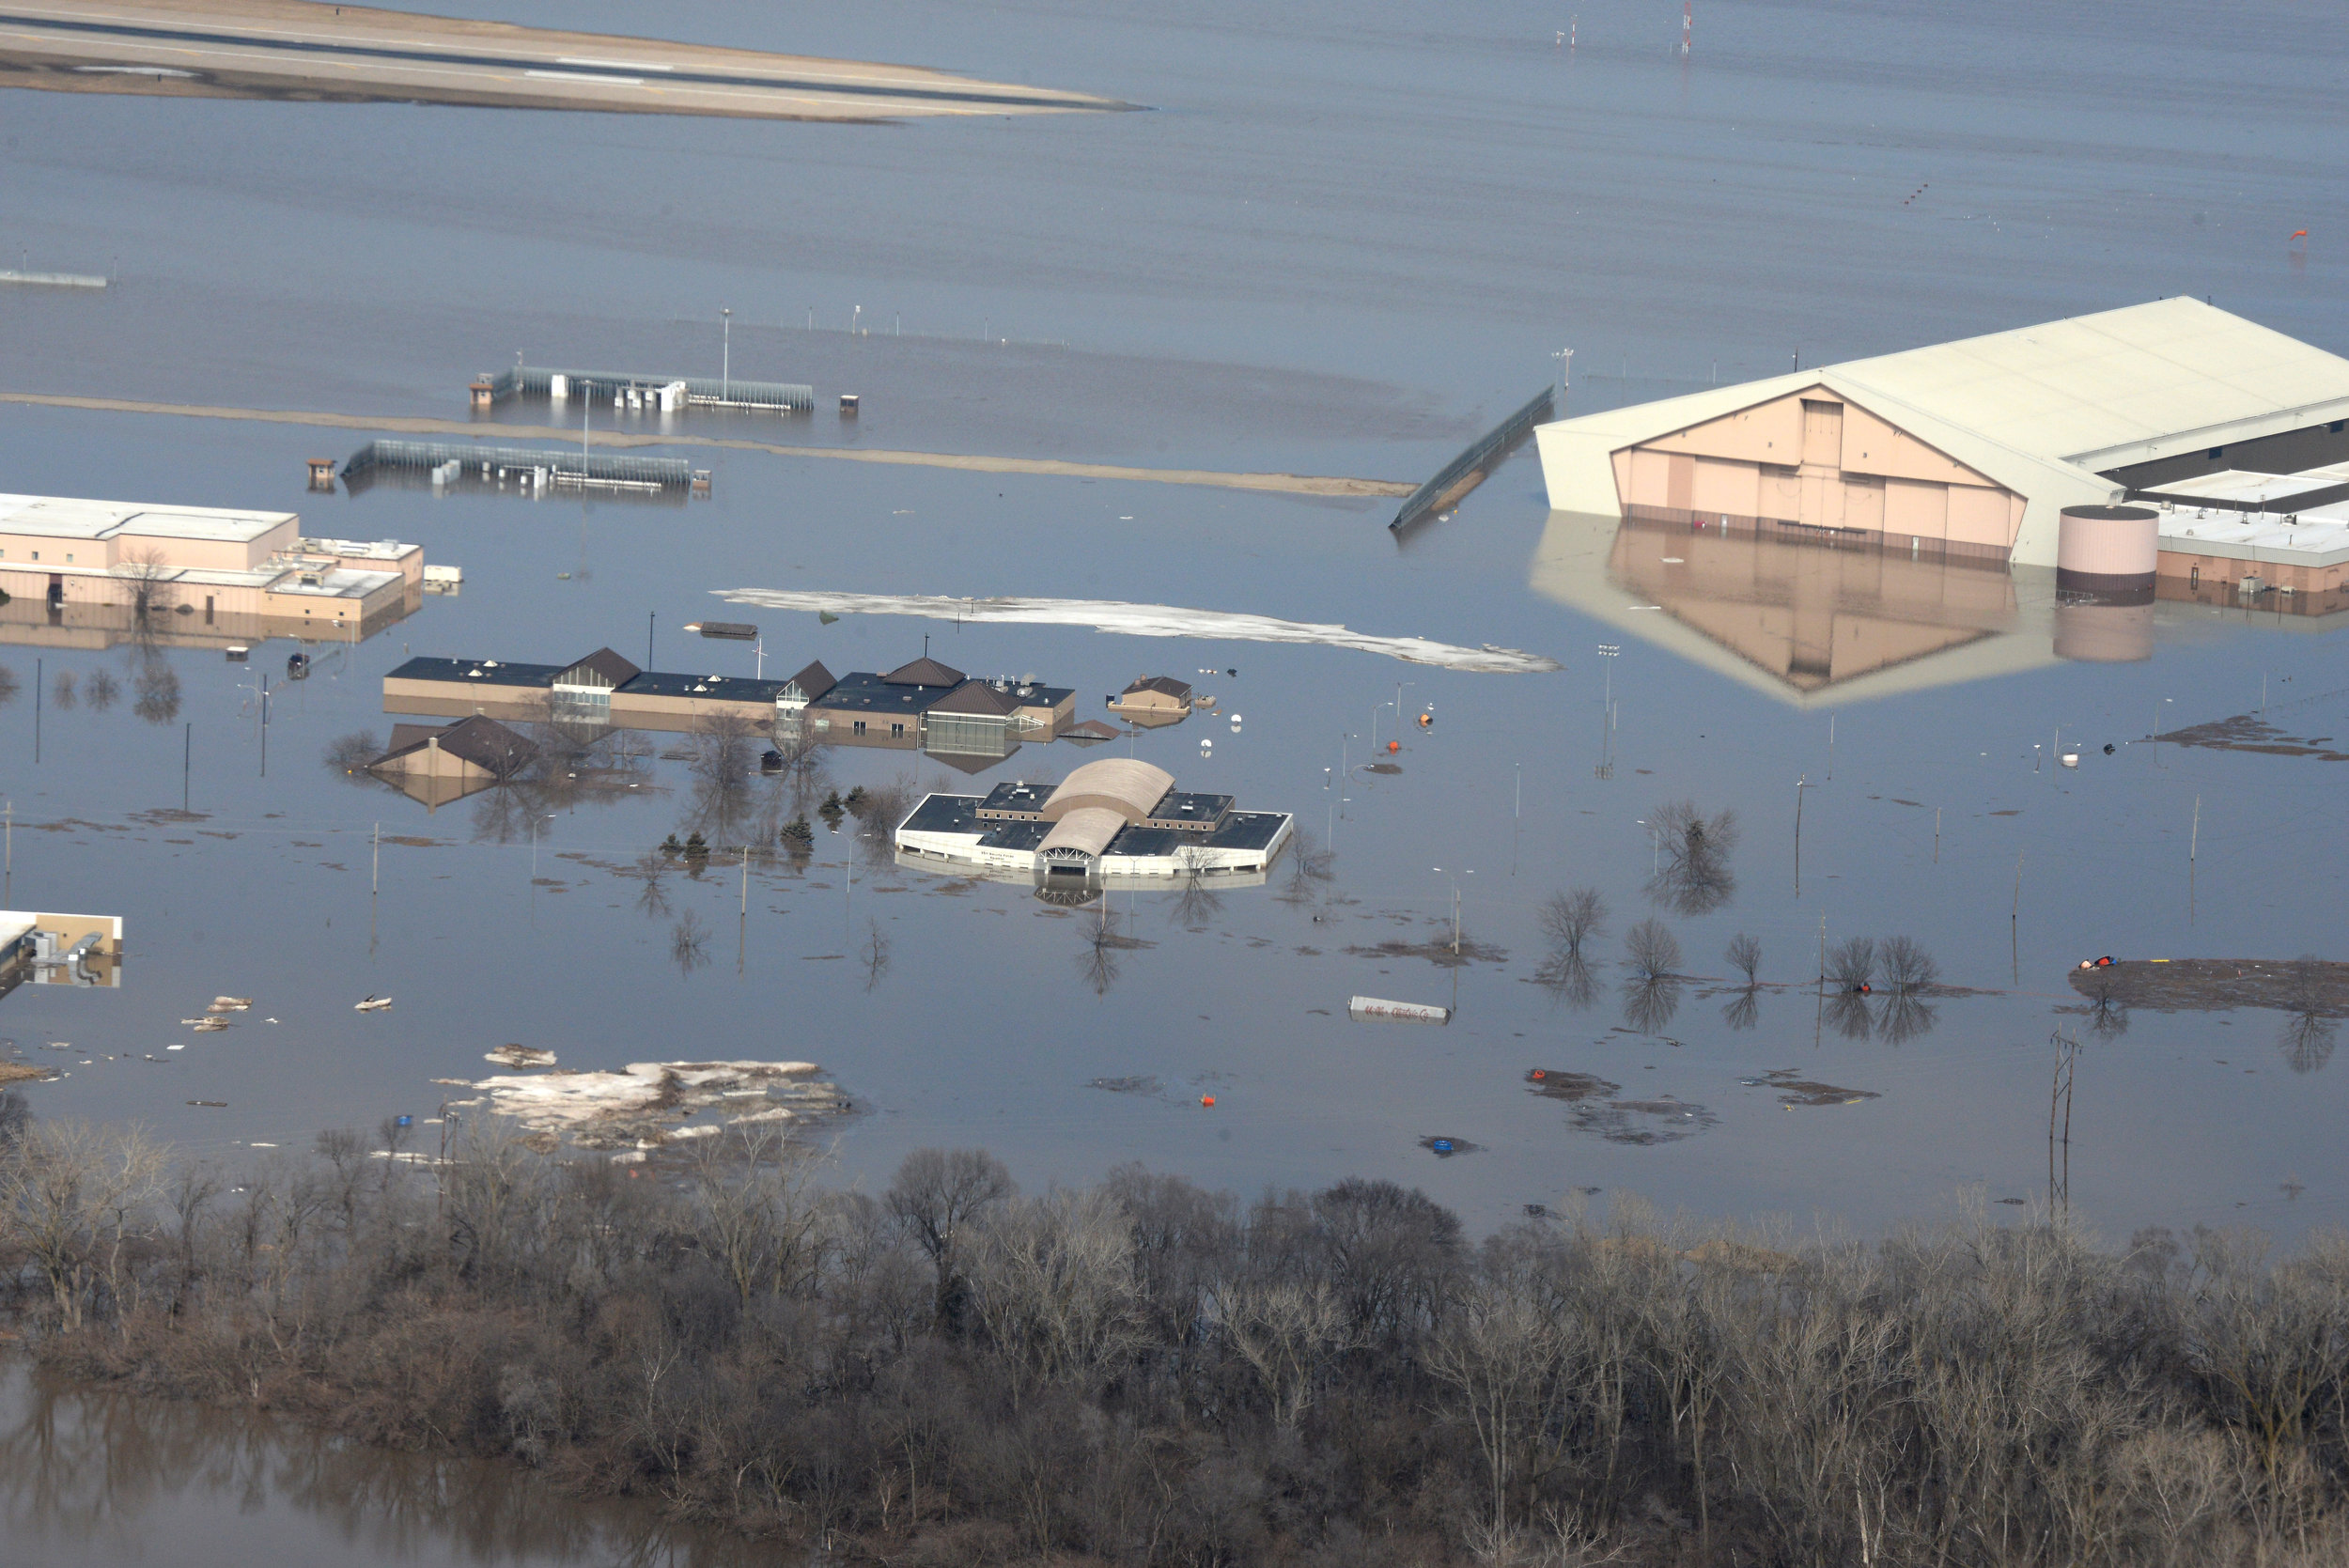 After the flood:  Much of Offutt Air Force Base, Neb., sits underwater after after the Missouri River overflowed earthen levees earlier this month. ( U.S. Air Force photo by Tech. Sgt. Rachelle Blake )